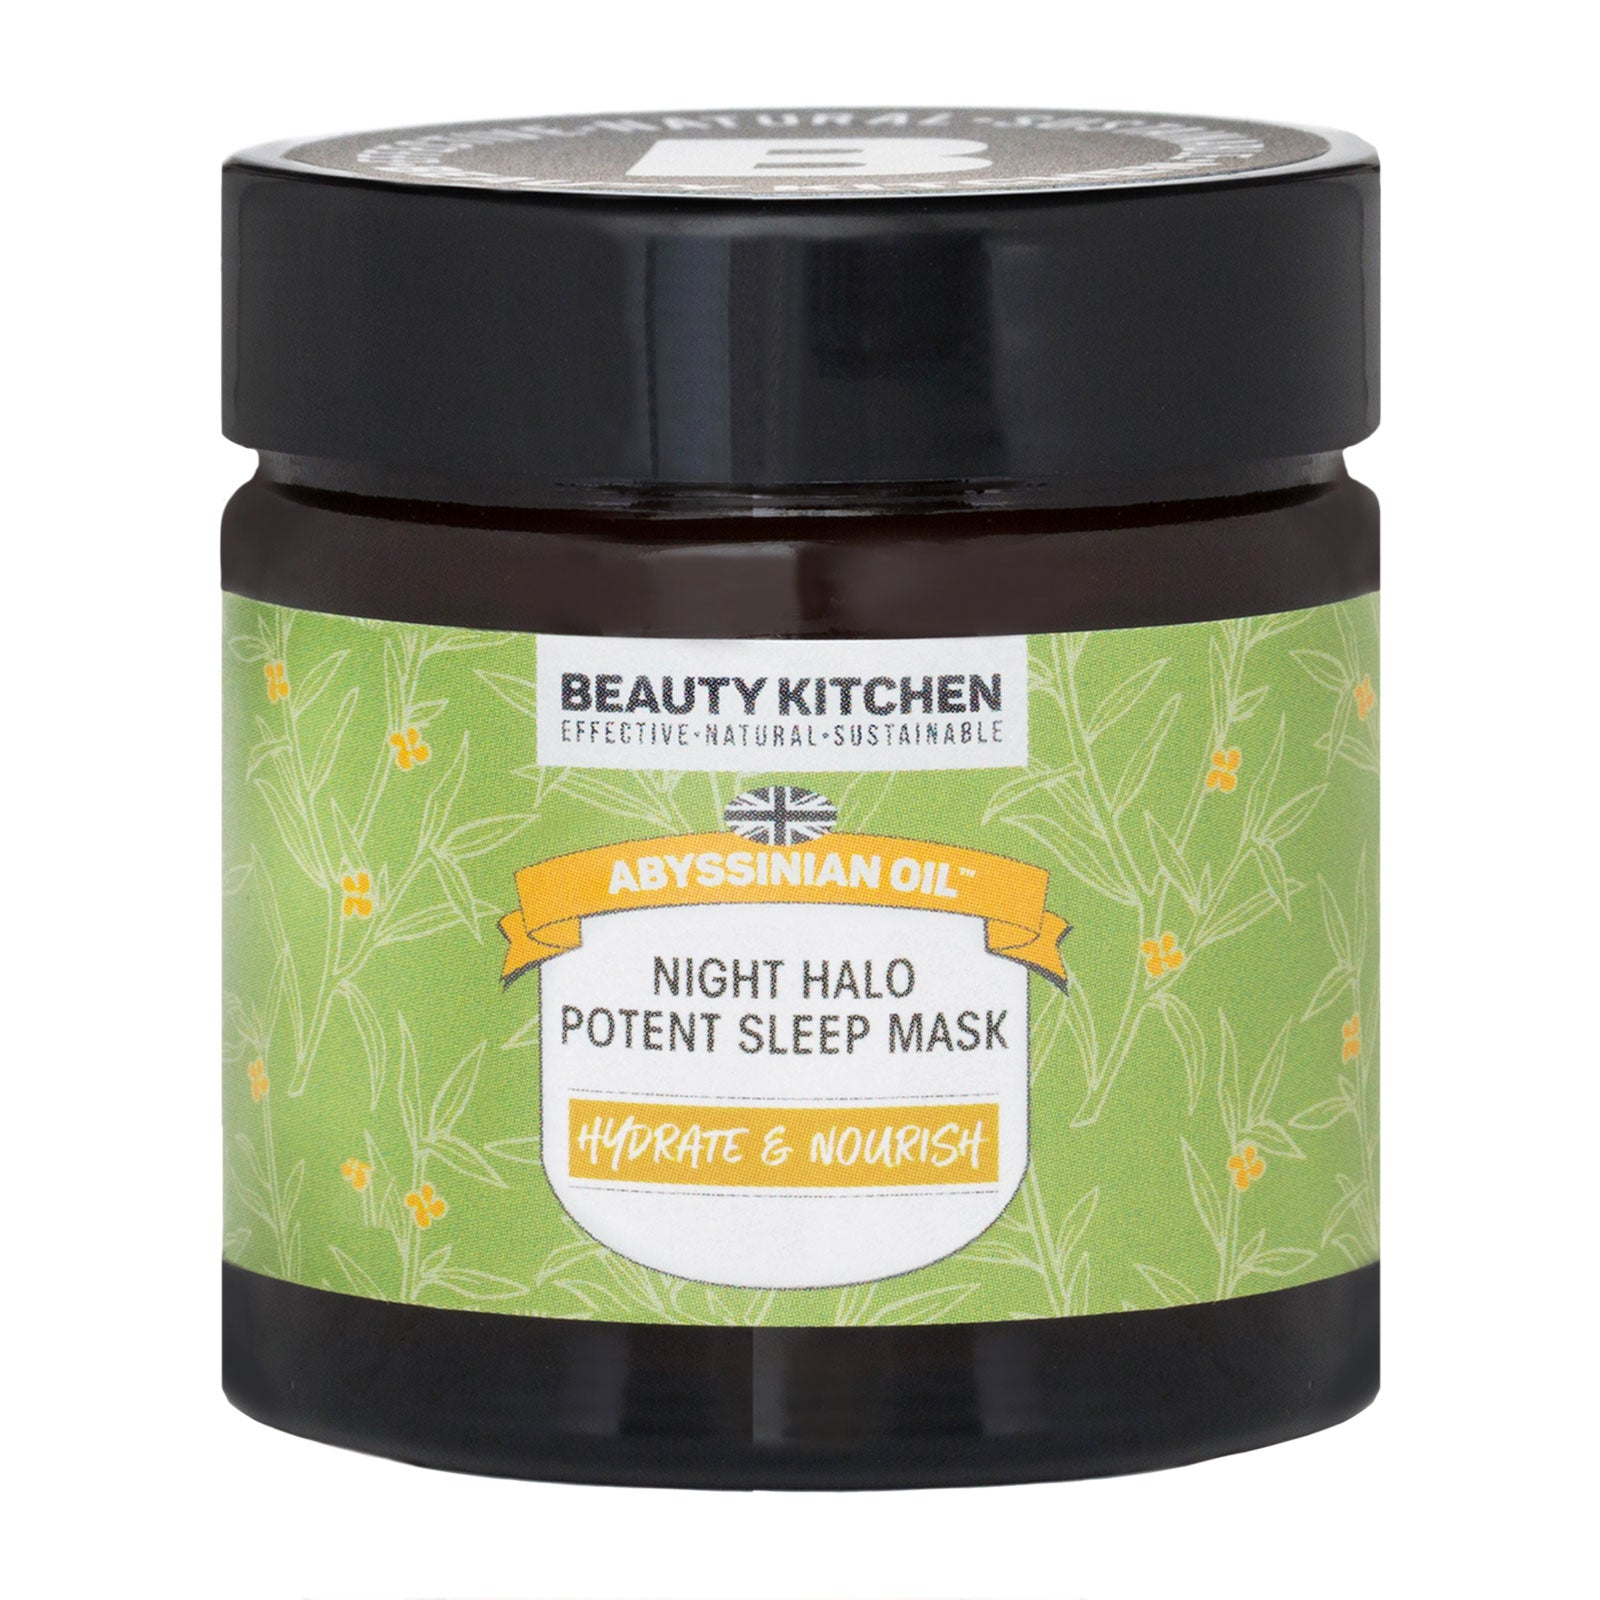 Beauty Kitchen Abyssinian Oil Night Halo Potent Sleep Mask 60ml